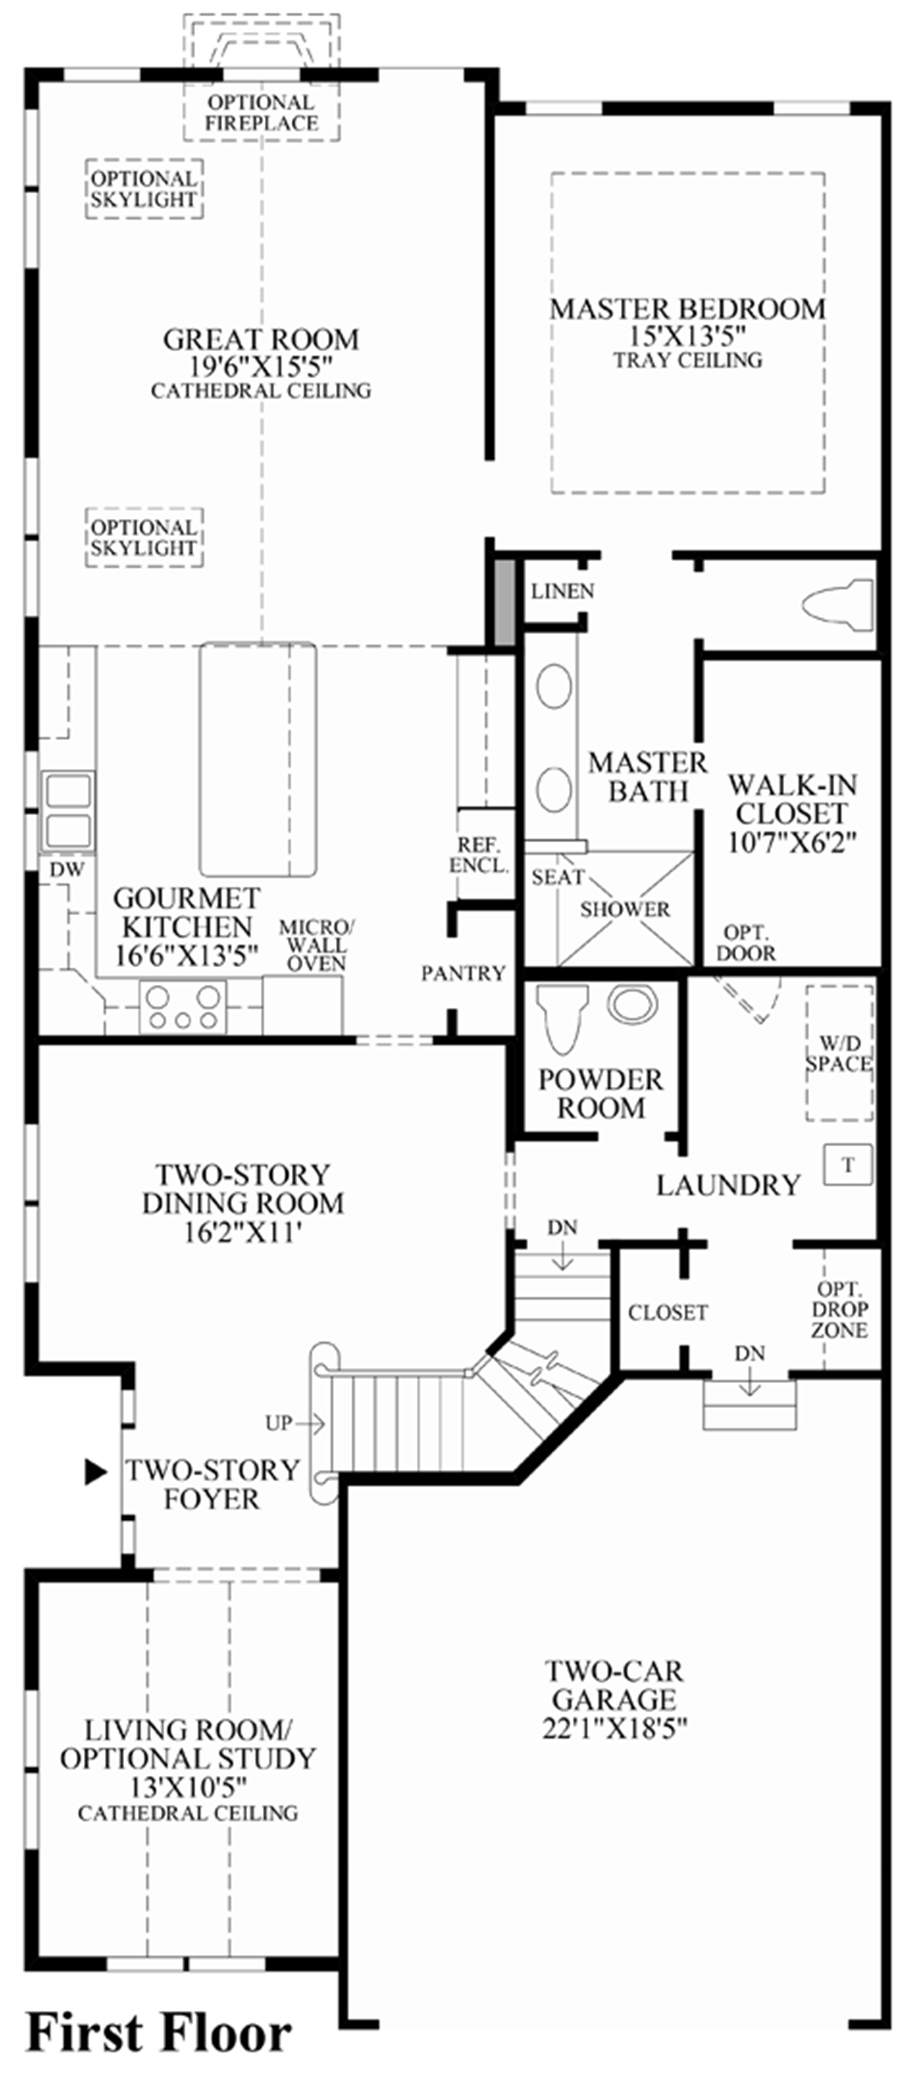 1st floor floor plan - Lake Ridge Beazer Homes Floor Plans